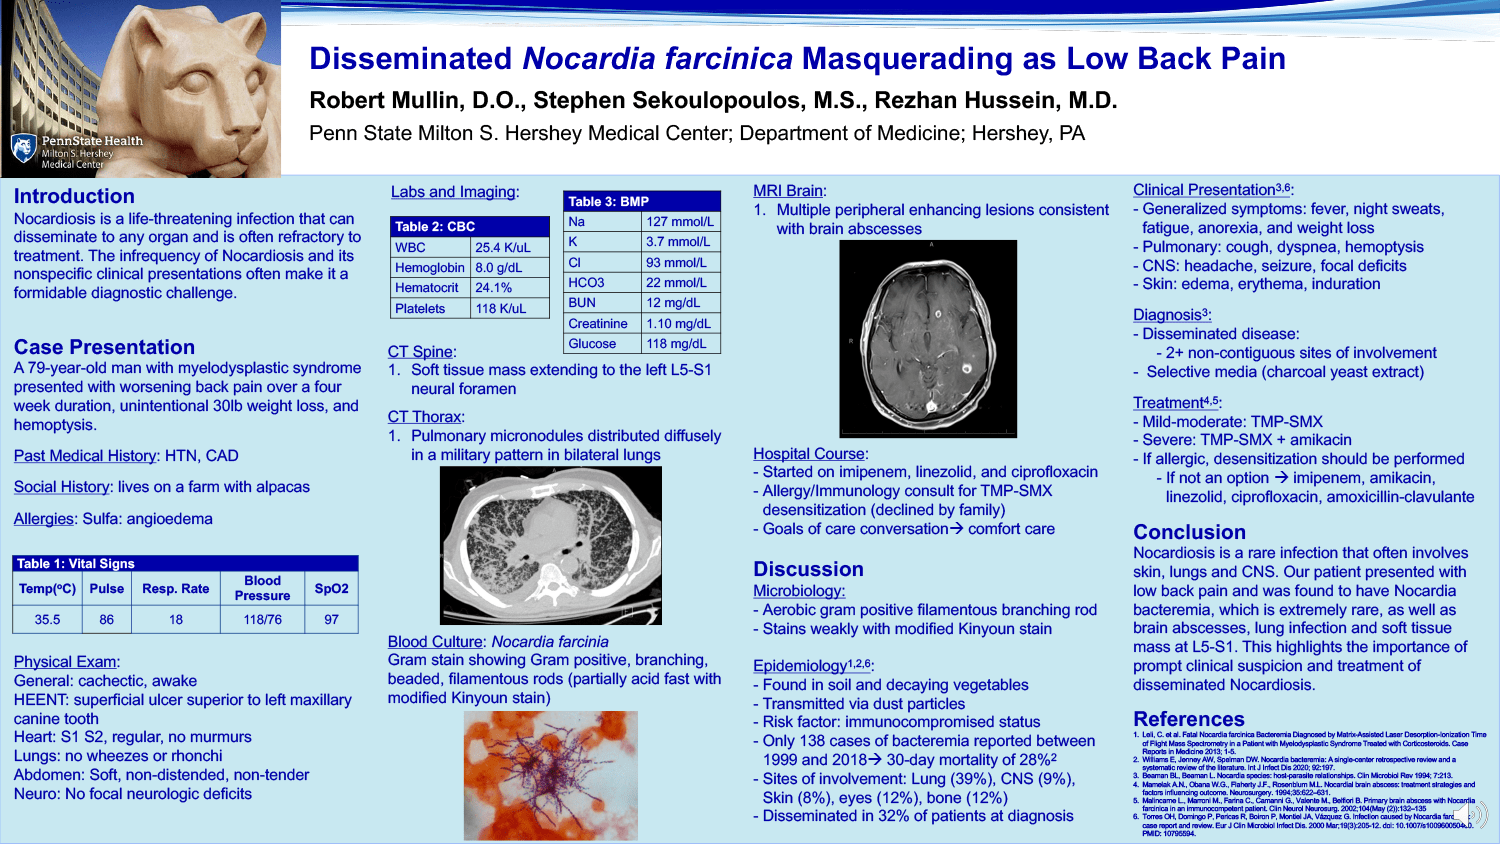 Robert Mullin - PAE-42-Disseminated-Nocardia-farcinica Masquerading-as-Low-Back-Pain